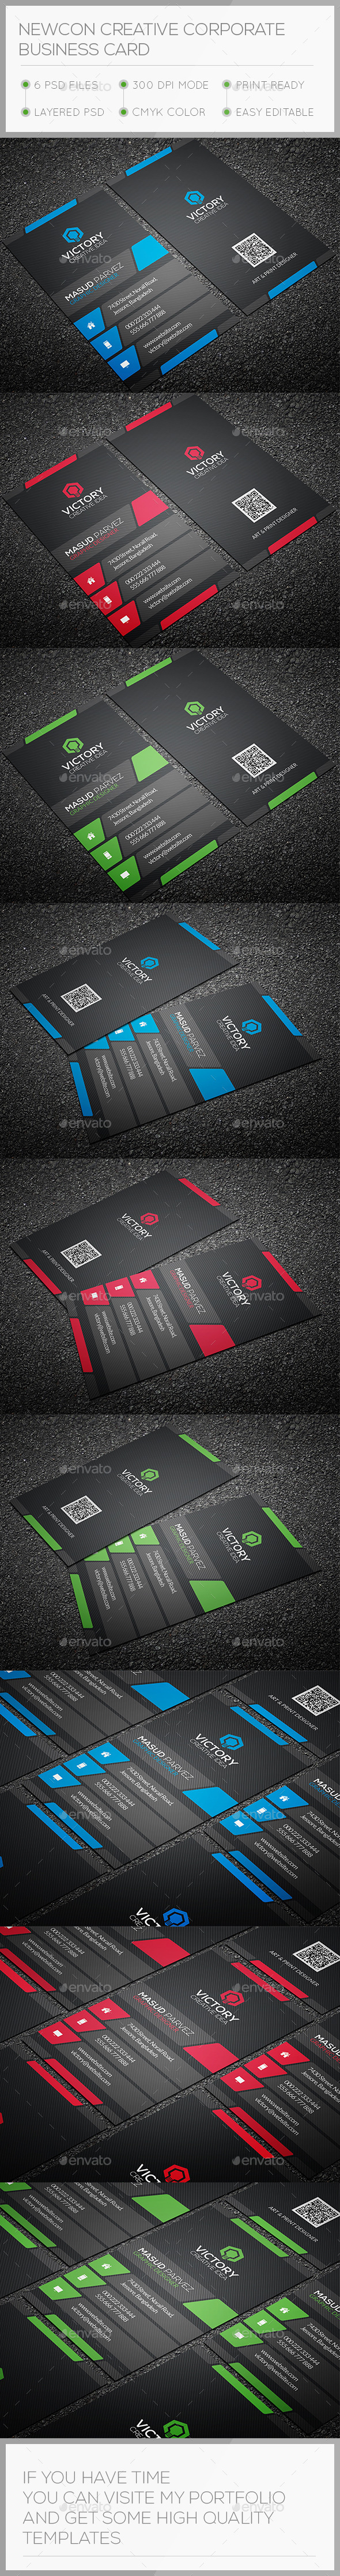 GraphicRiver Newcon Creative Business Card 10651854